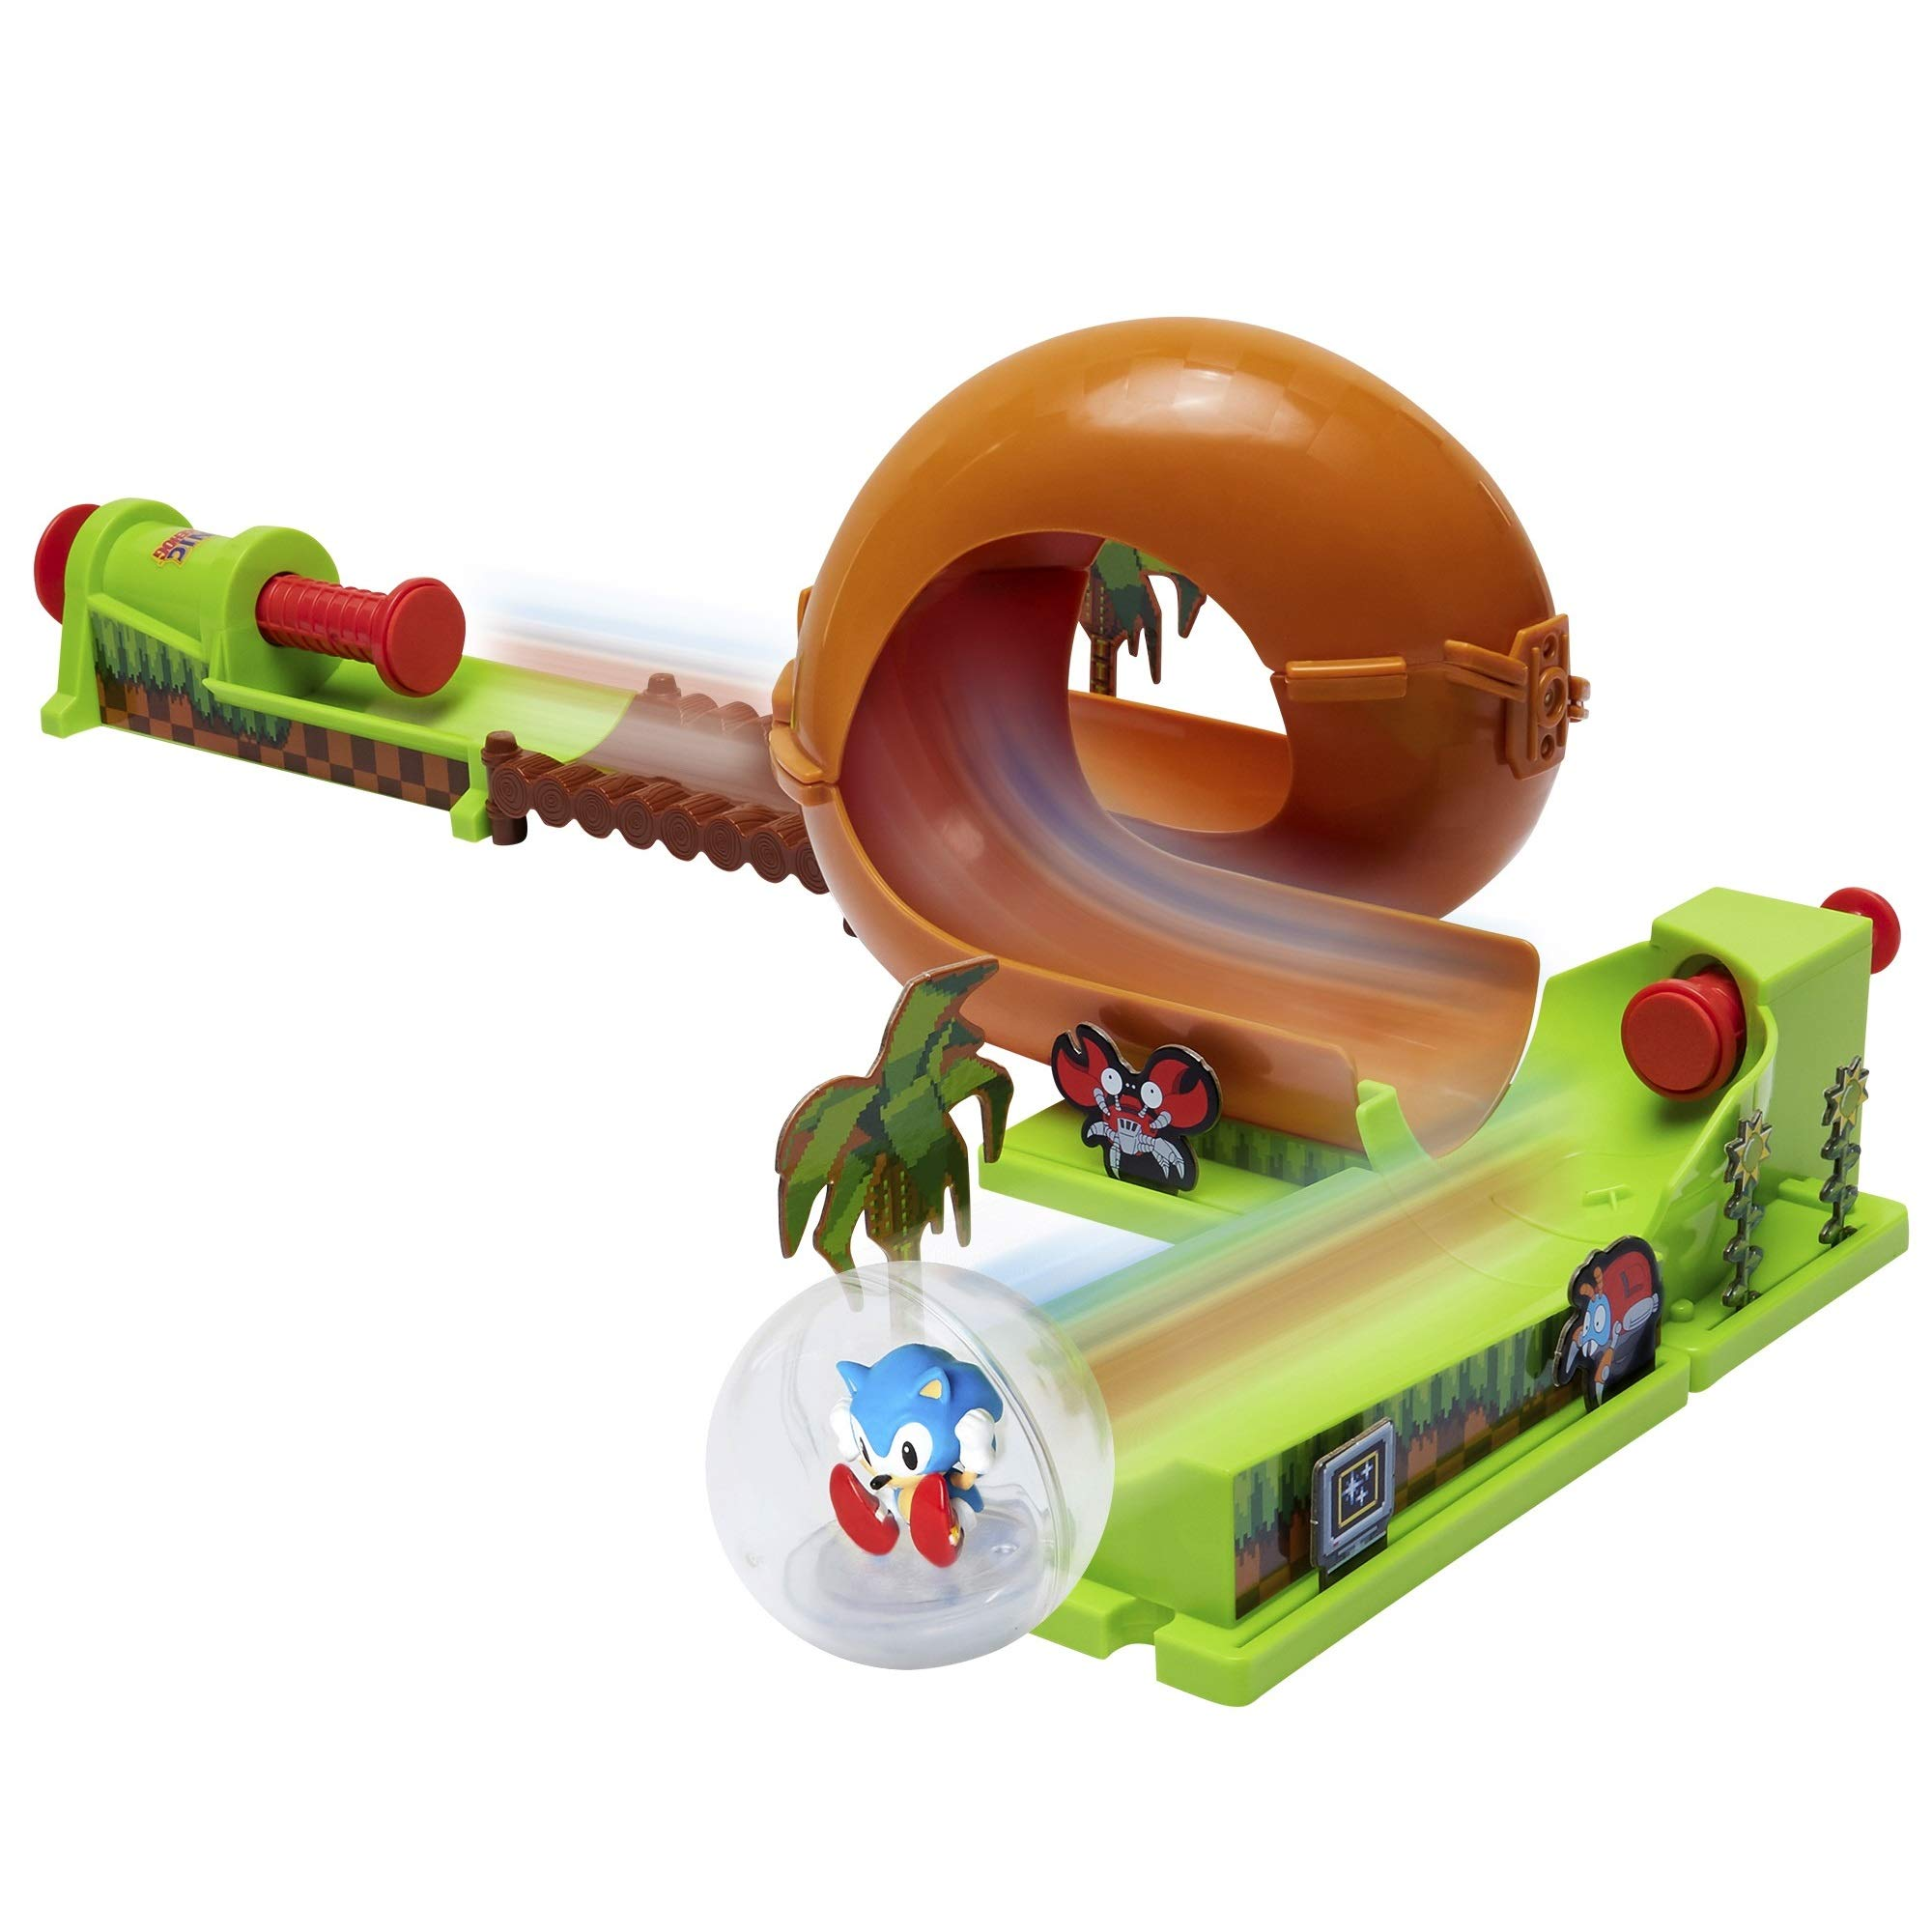 Sonic The Hedgehog Pinball Green Hill Zone Pinball Track Play Set, 9 Piece, with Looping Action & Automatic Bumper Exclusive Sonic Sphere Included, for Ages 3+